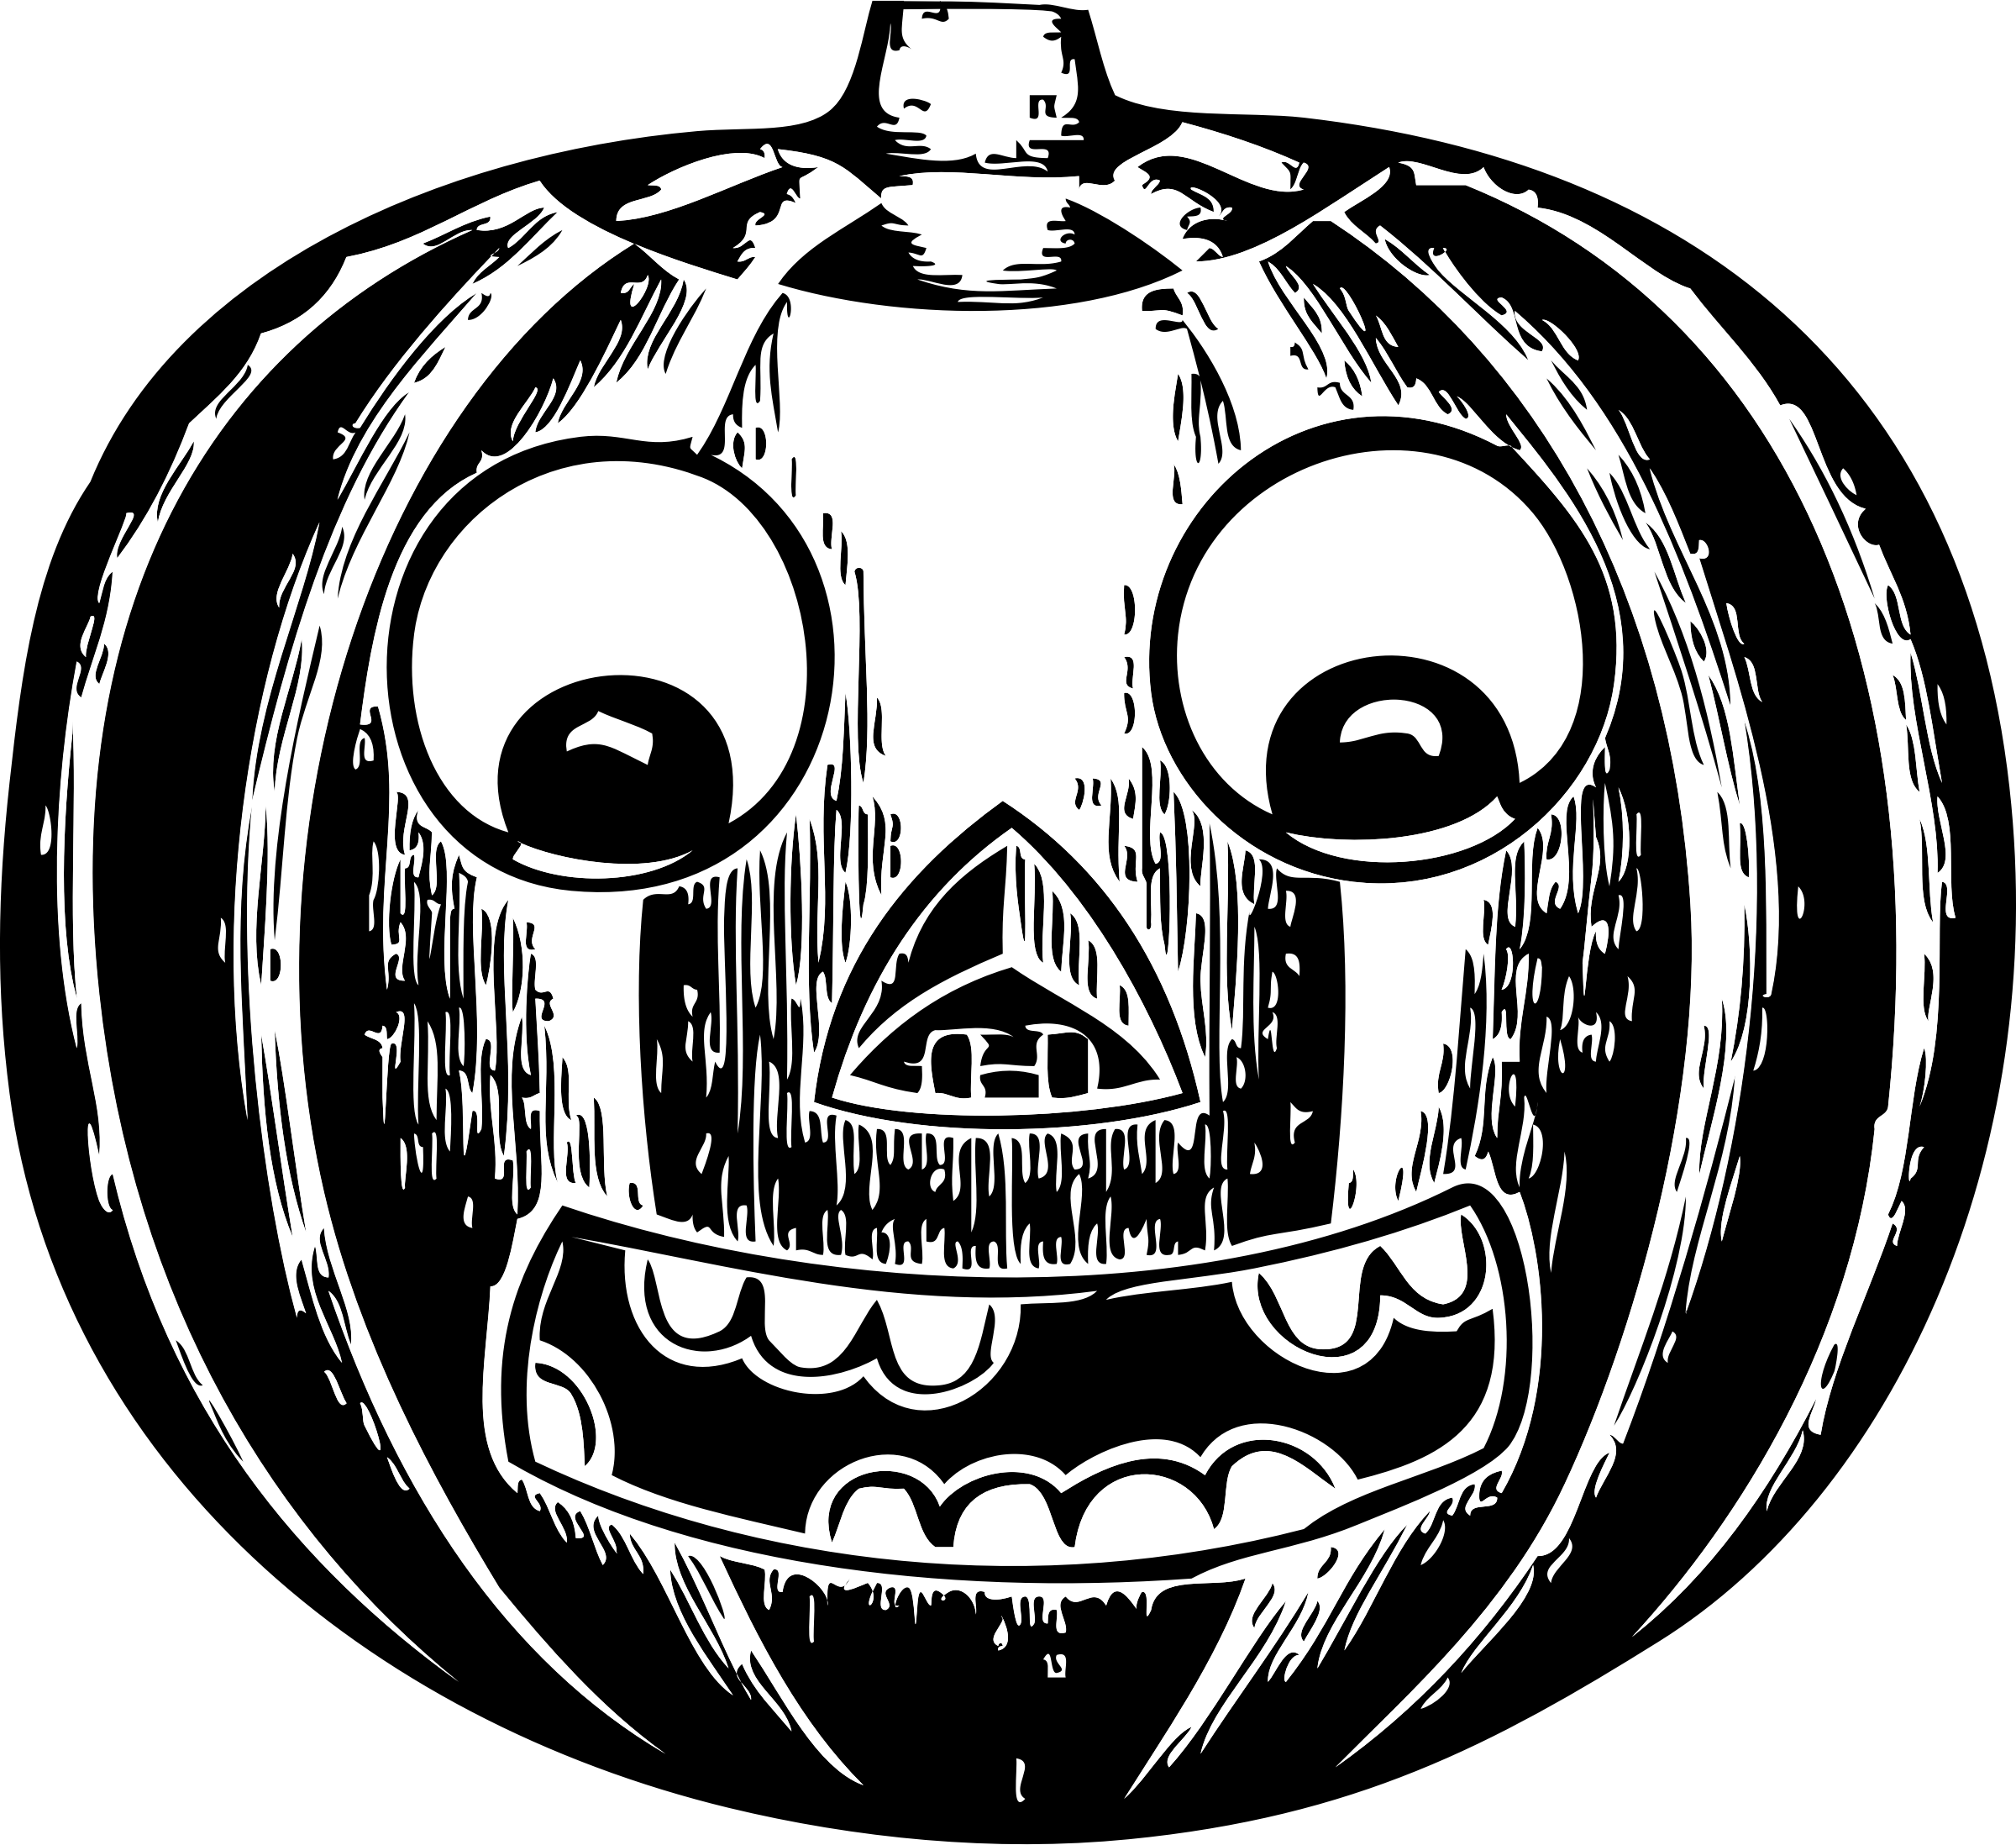 Big eyed pumpkin clipart svg black and white stock Clipart - jack o' lantern with eyes svg black and white stock